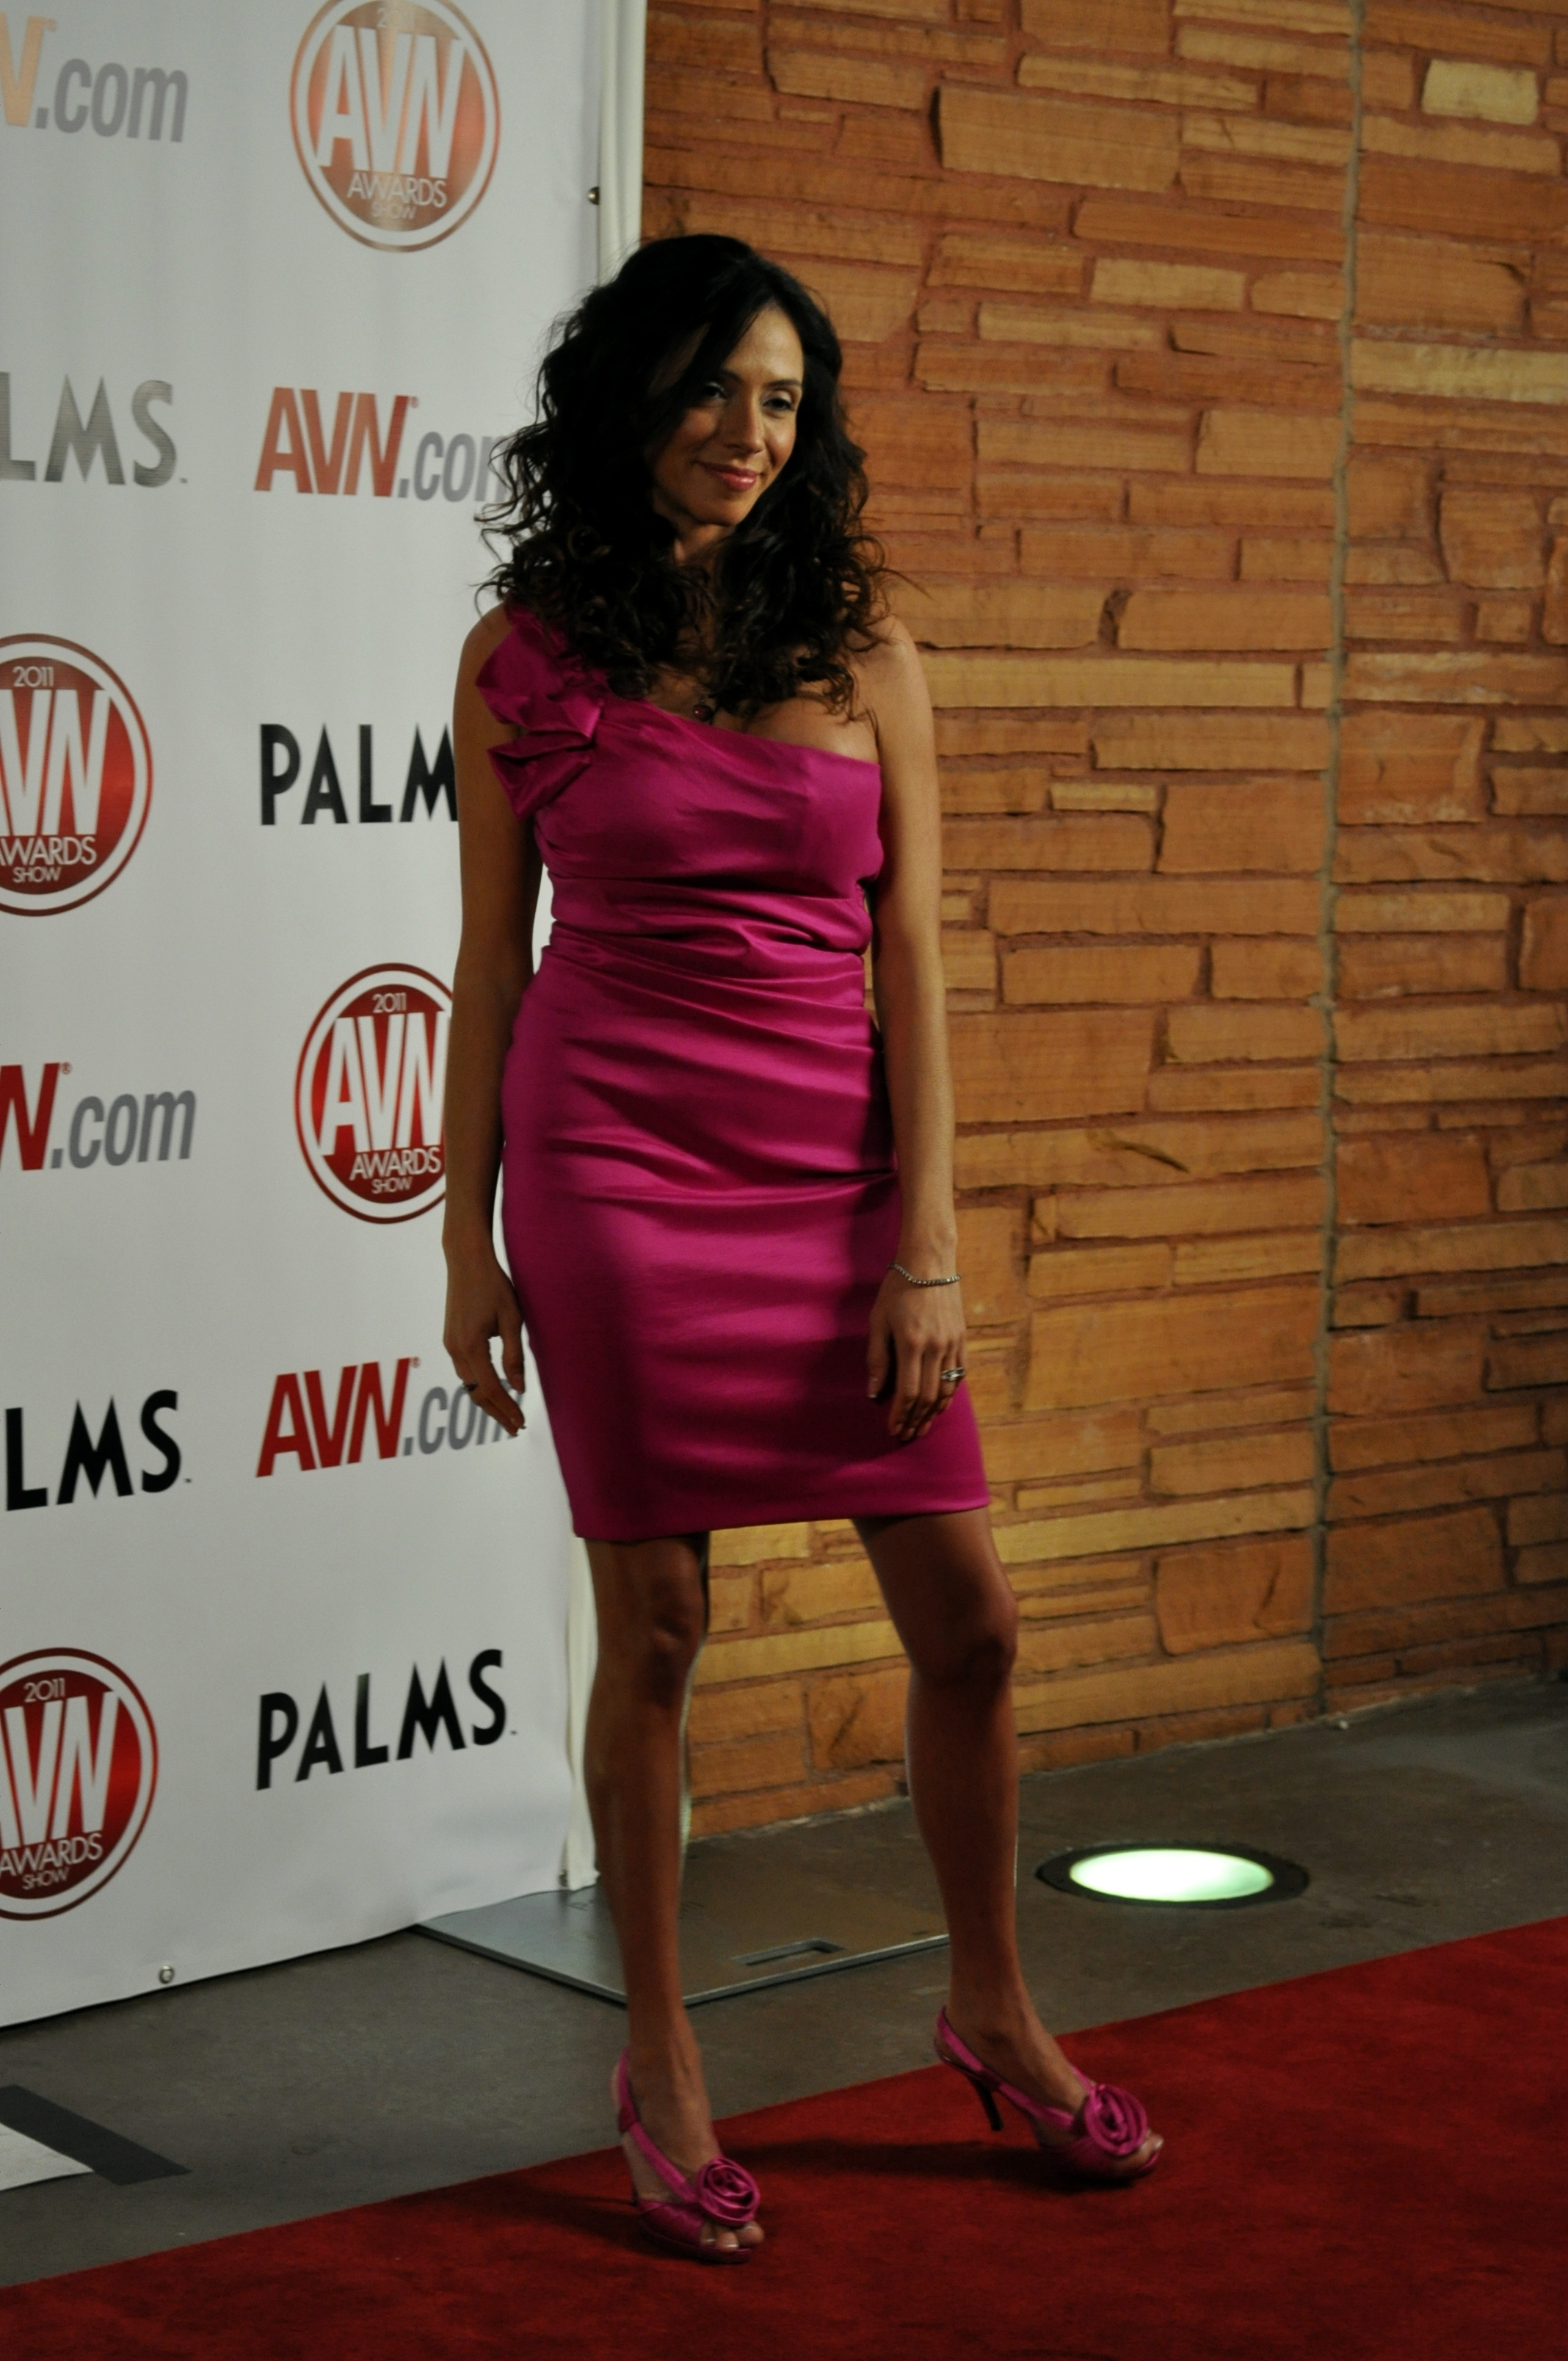 Ariella Ferrera at the AVN 2011